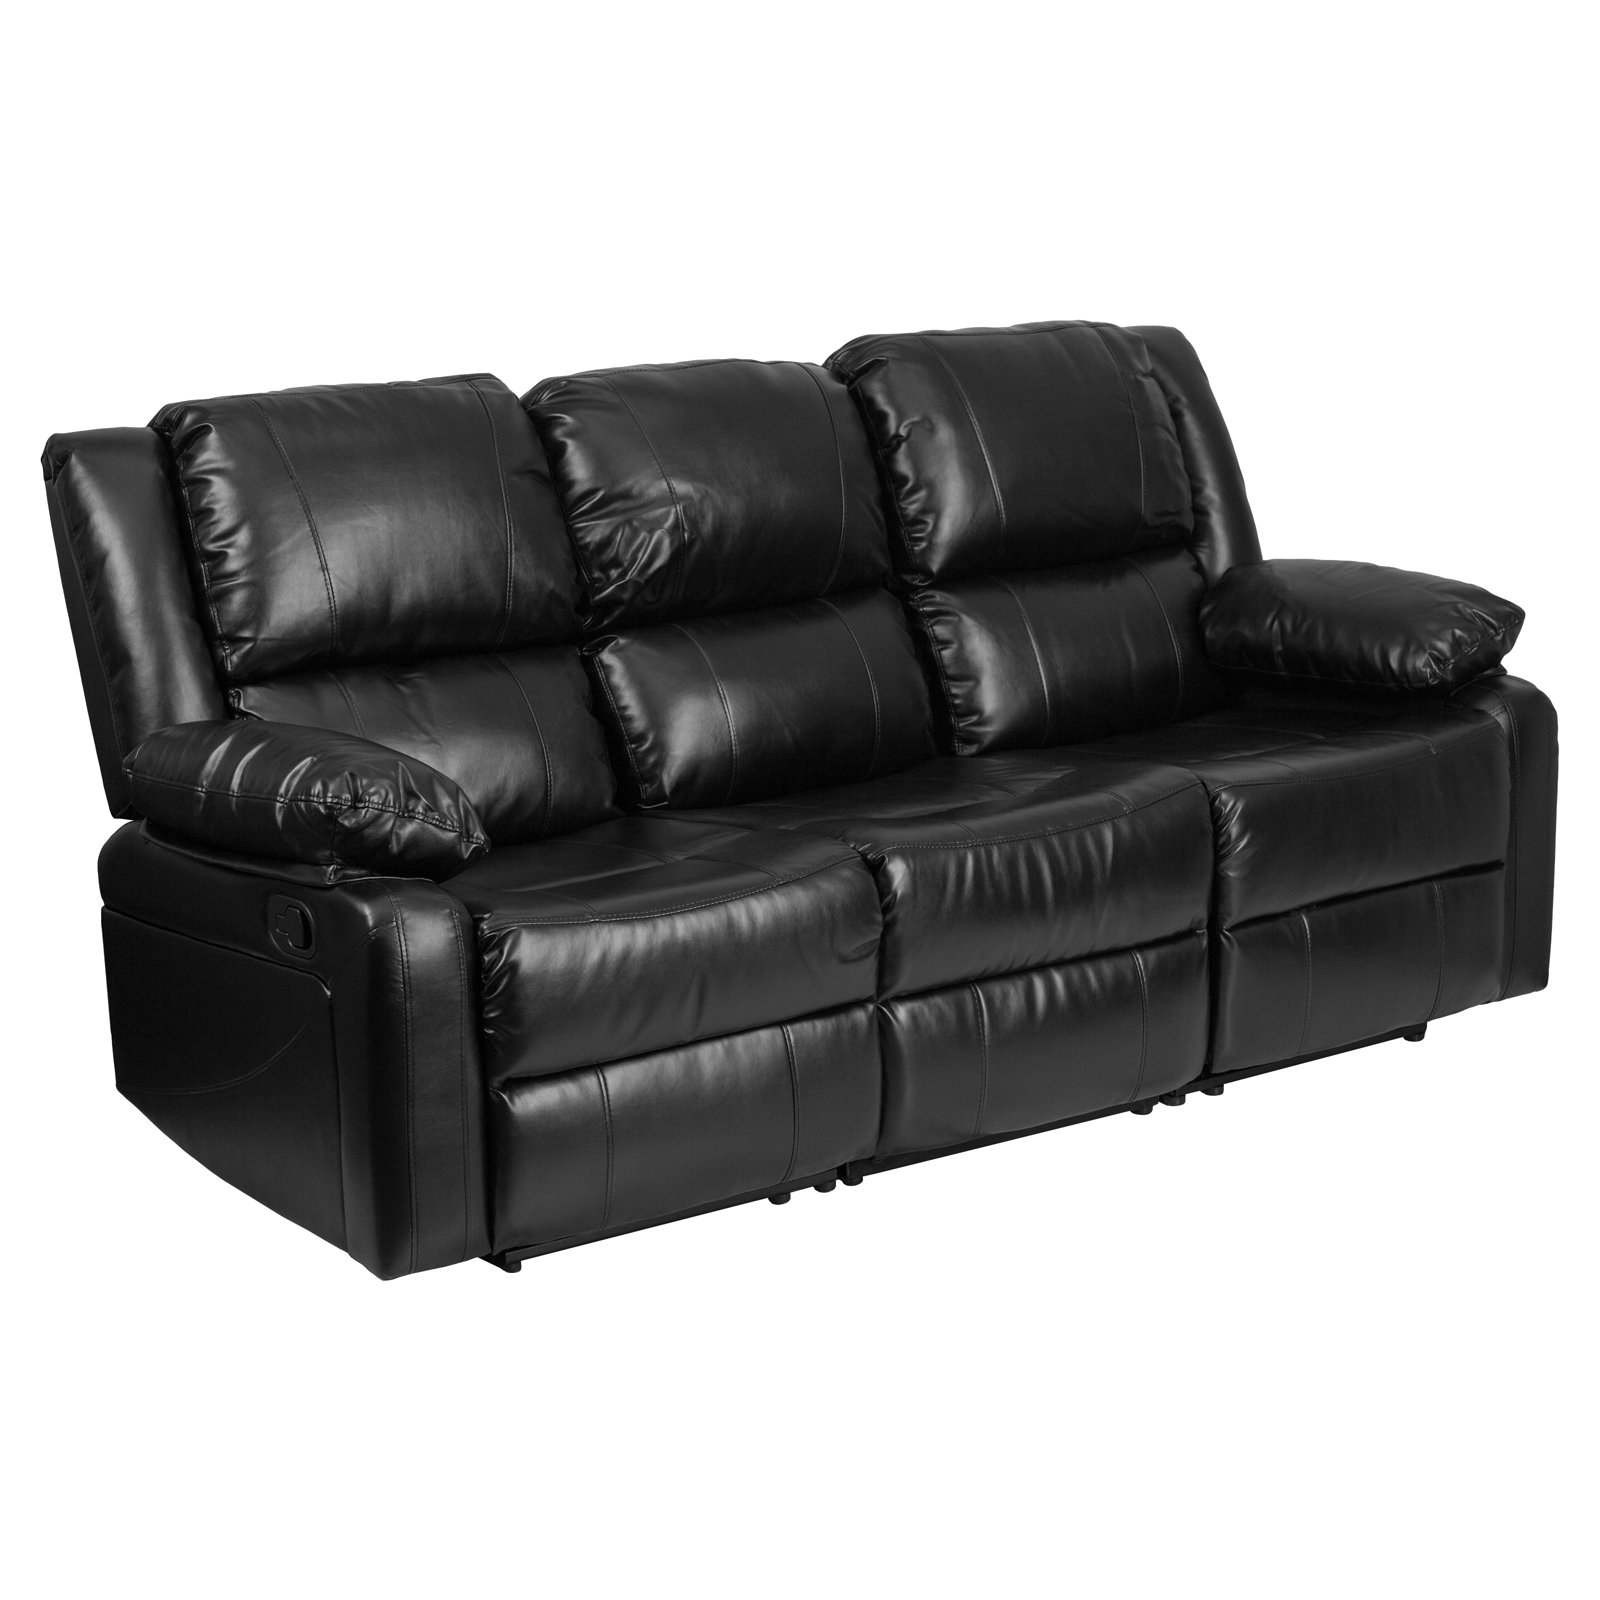 Flash Furniture Harmony Series Black Leather Sofa with Two Built-In Recliners  sc 1 st  Walmart & Reclining Sectional Sofas islam-shia.org